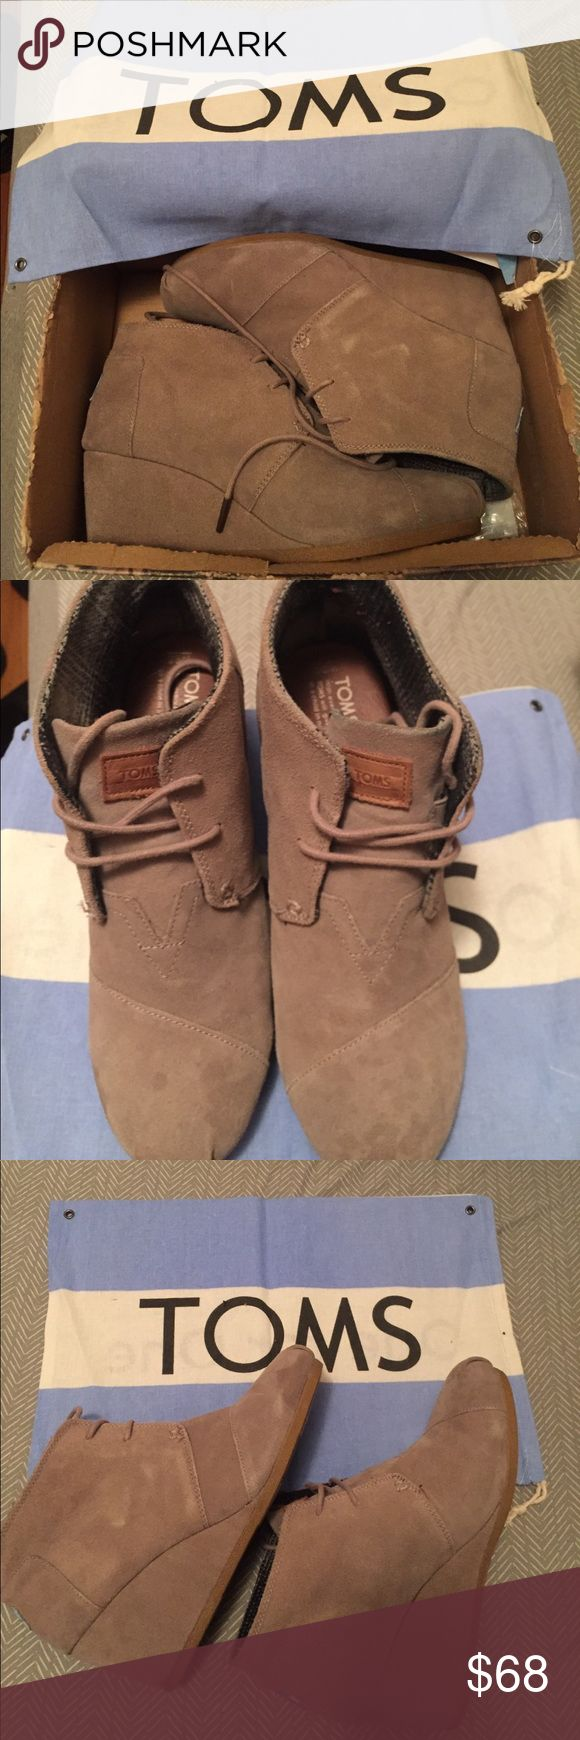 TOMS Desert Wedge Taupe Suede Women's Size 9.5 MINT Condition with Original Box!  TOMS Brand Desert Suede Wedge in Taupe Color. Comfortable and Easy to Wear! Looks great with Denim and Dresses. Women's Size 9.5 TOMS Shoes Wedges